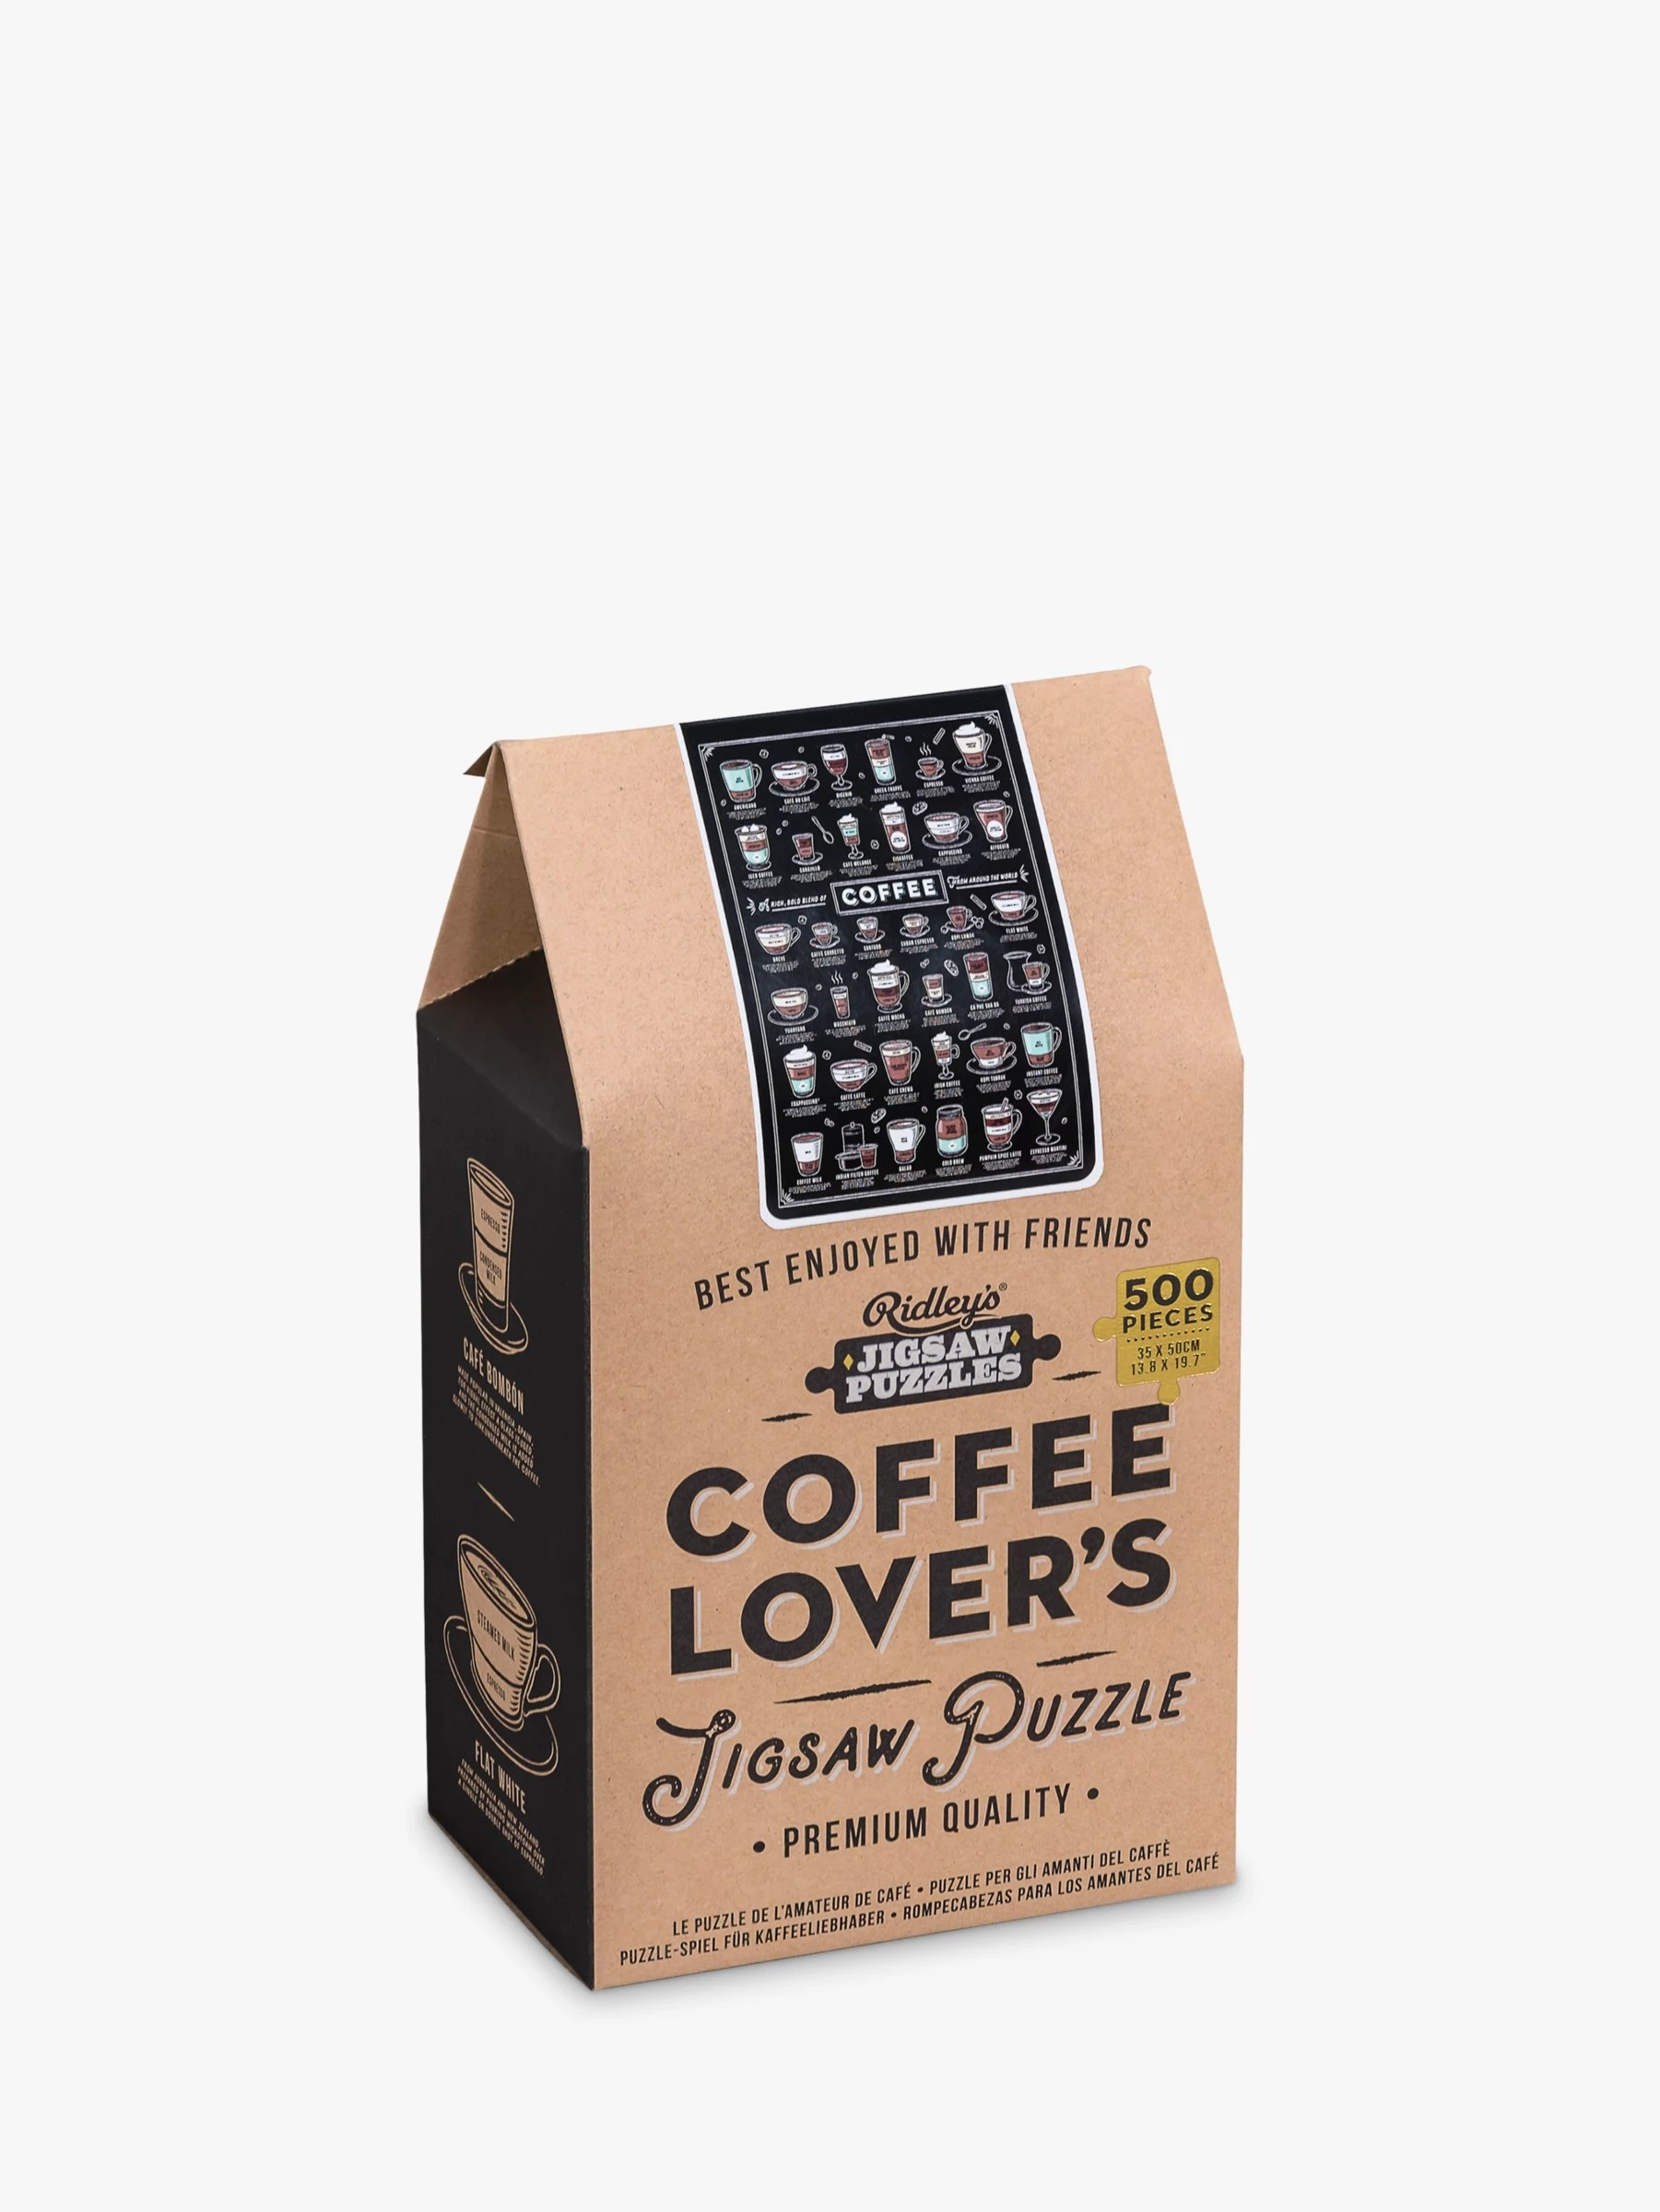 Puzzle Shop Brisbane Ridleys Coffee Lovers Jigsaw Puzzle 500 Pieces At John Lewis